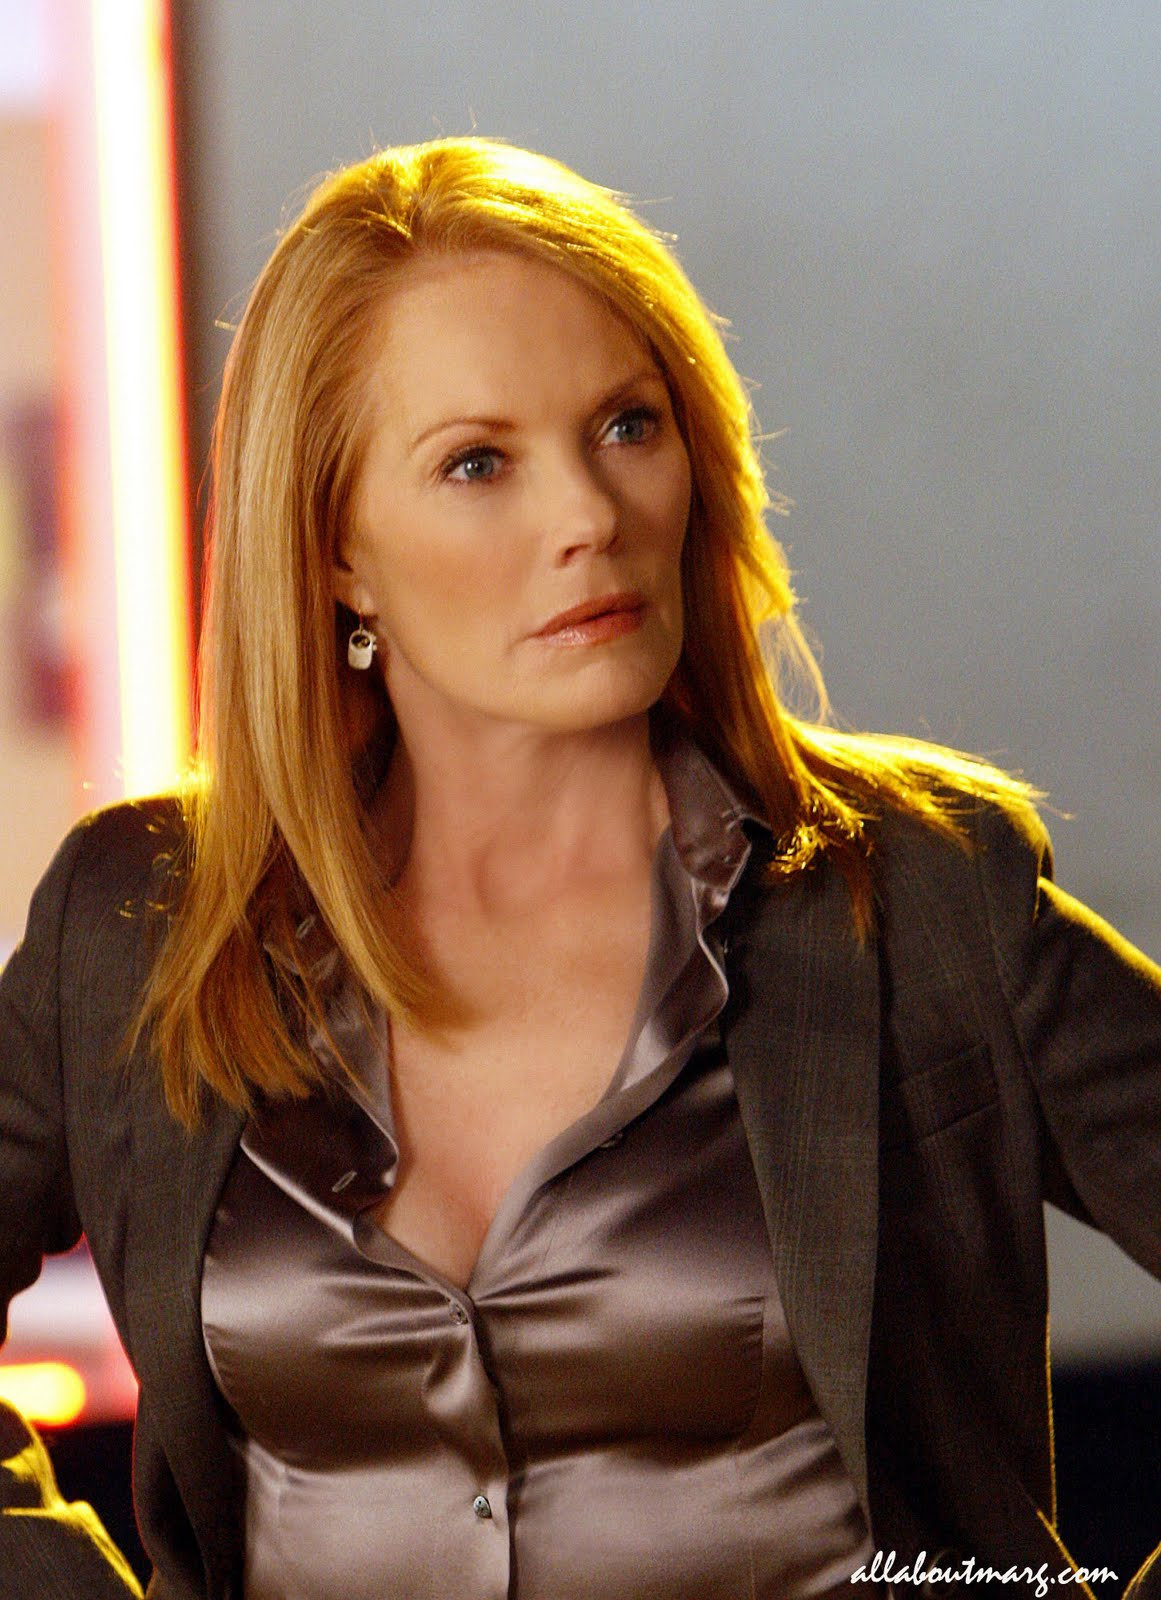 Marg helgenberger sexy